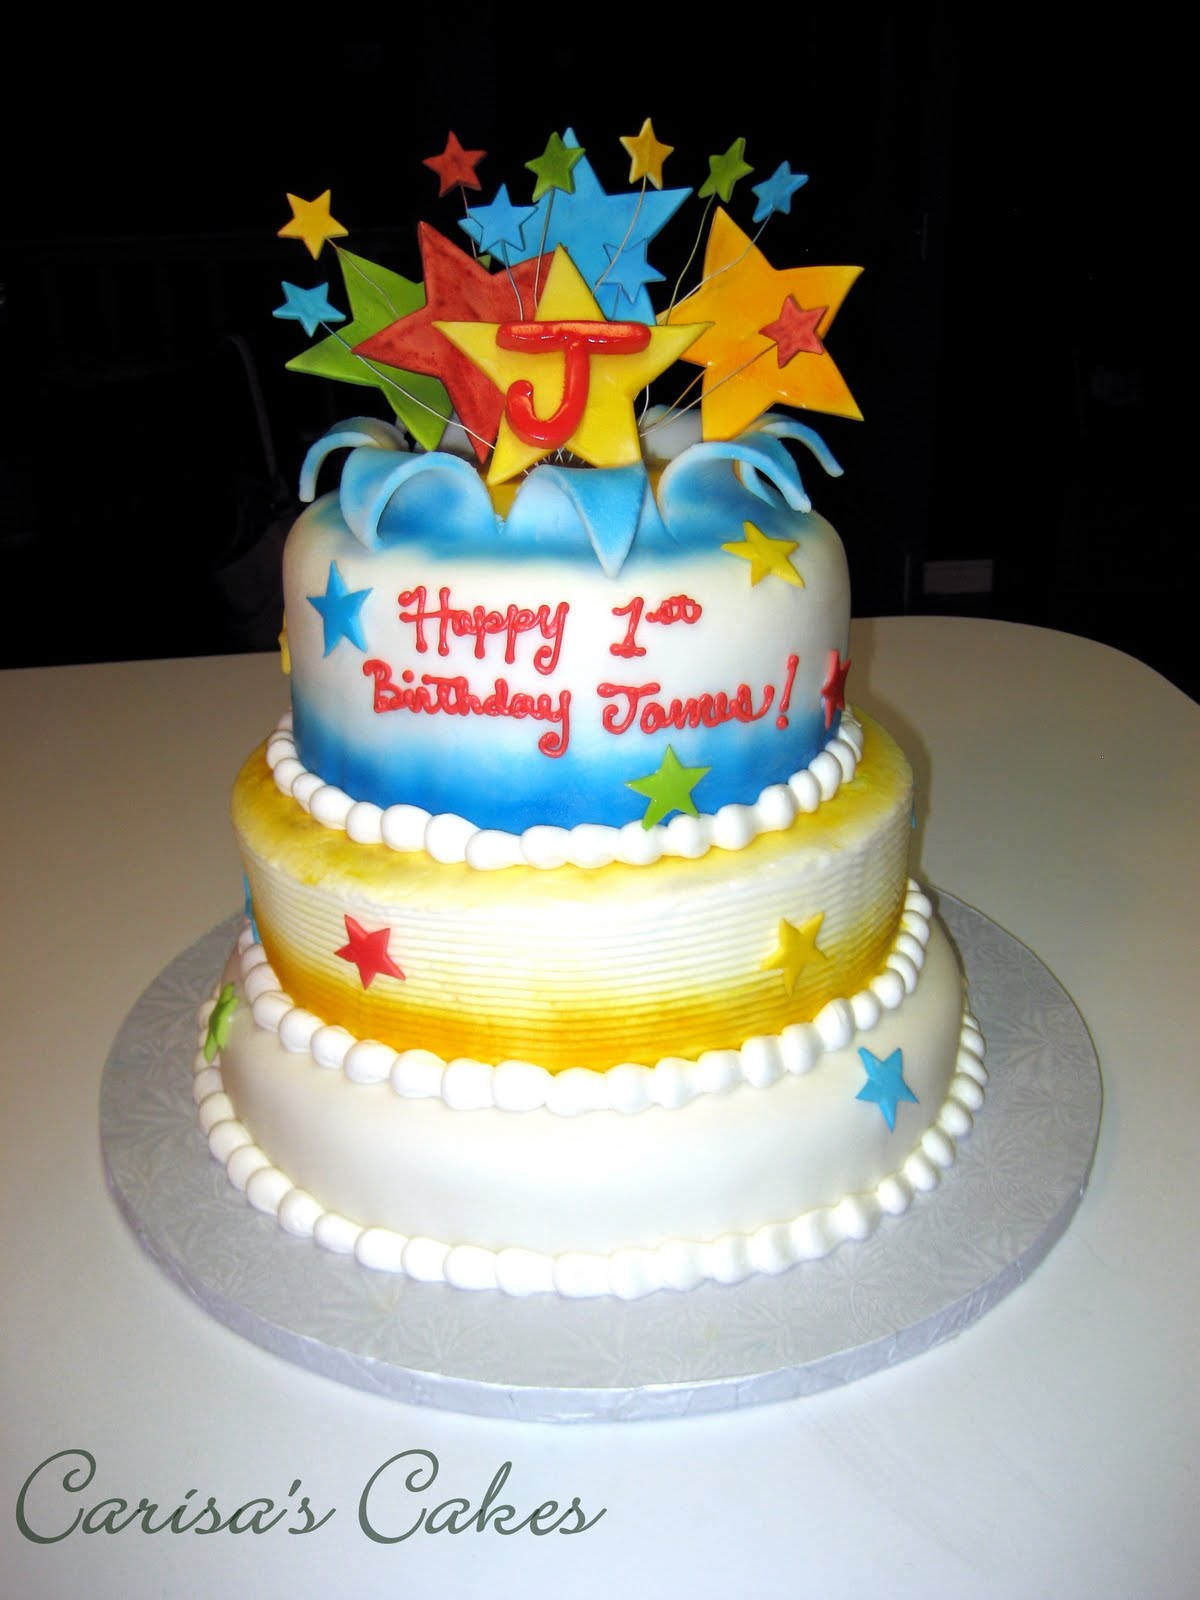 Carisas cakes jamess 1st birthday cake this cake was quite the challenge but i had lots of fun making it happy birthday sweet baby james thecheapjerseys Images